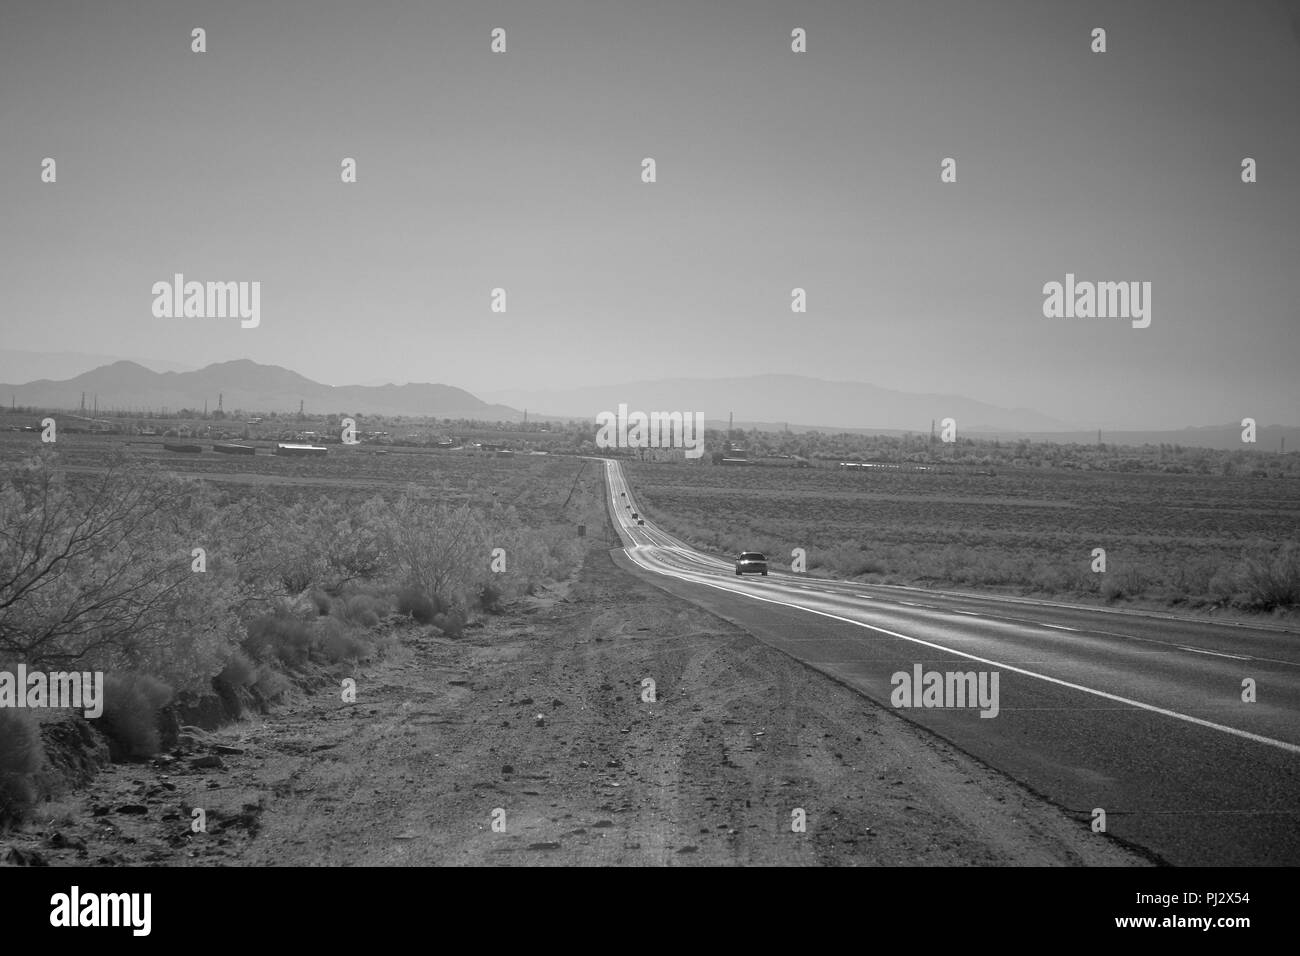 A lonely desert highway leading down into a valley with hazy mountains beyond. - Stock Image